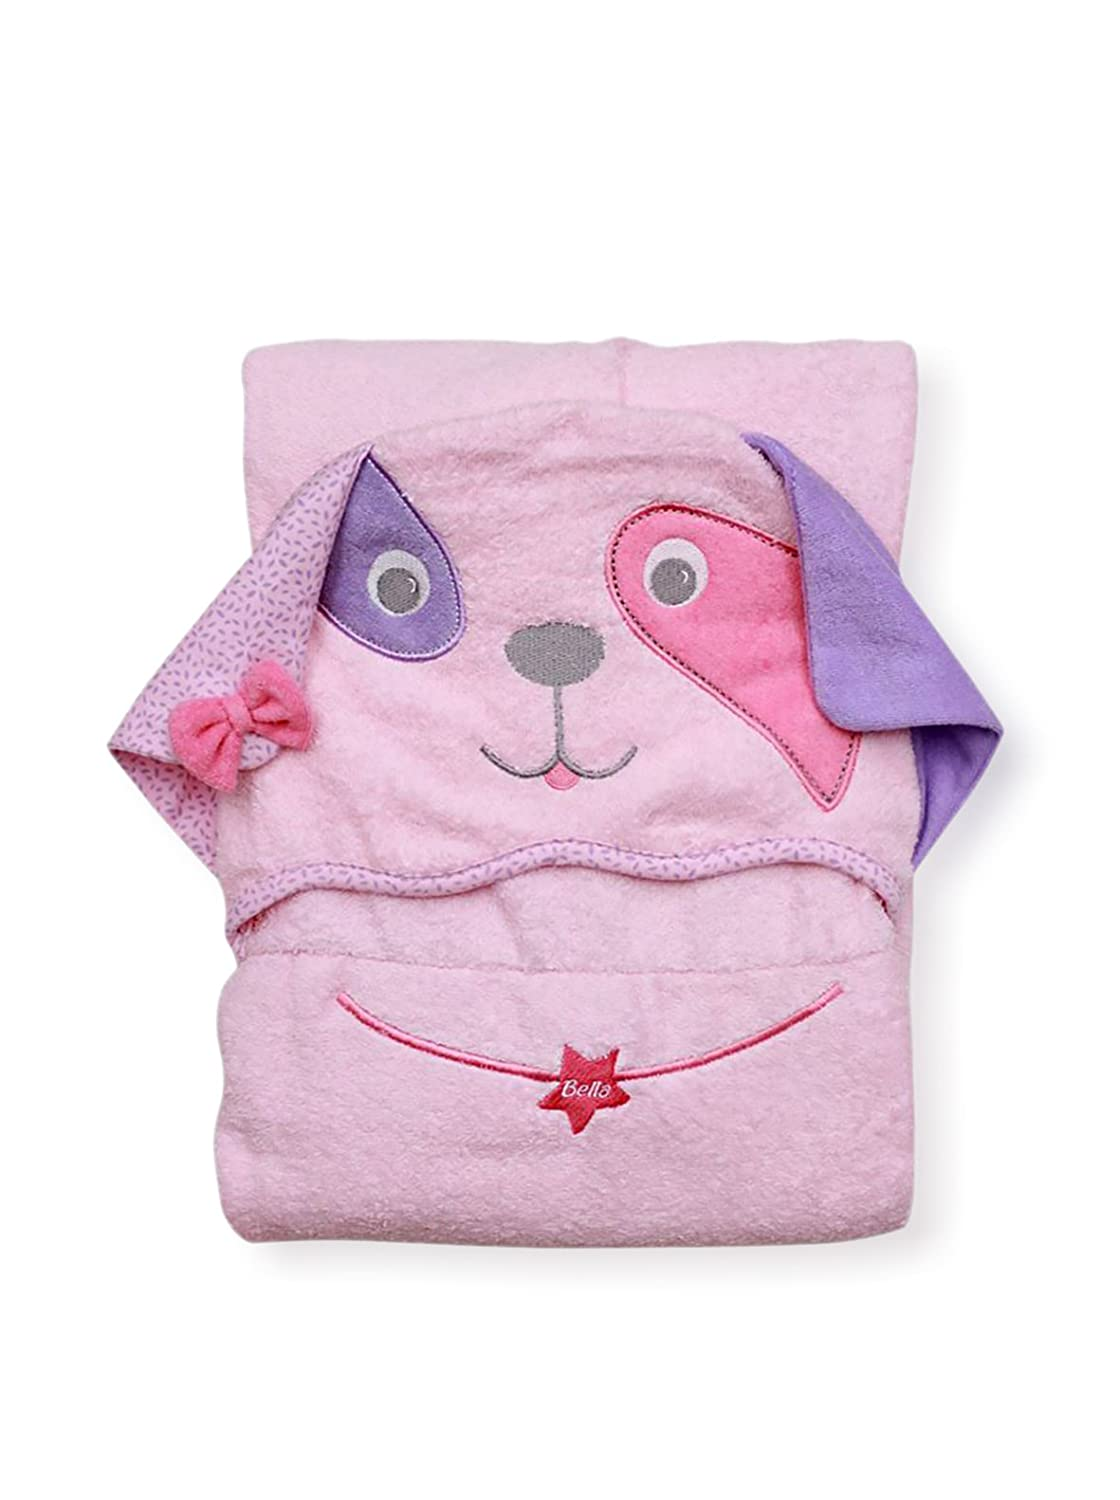 Dog - Extra Large Absorbent Hooded Towel, 100 cm X 75 cm By Frenchie Mini Couture BabyCentre 203